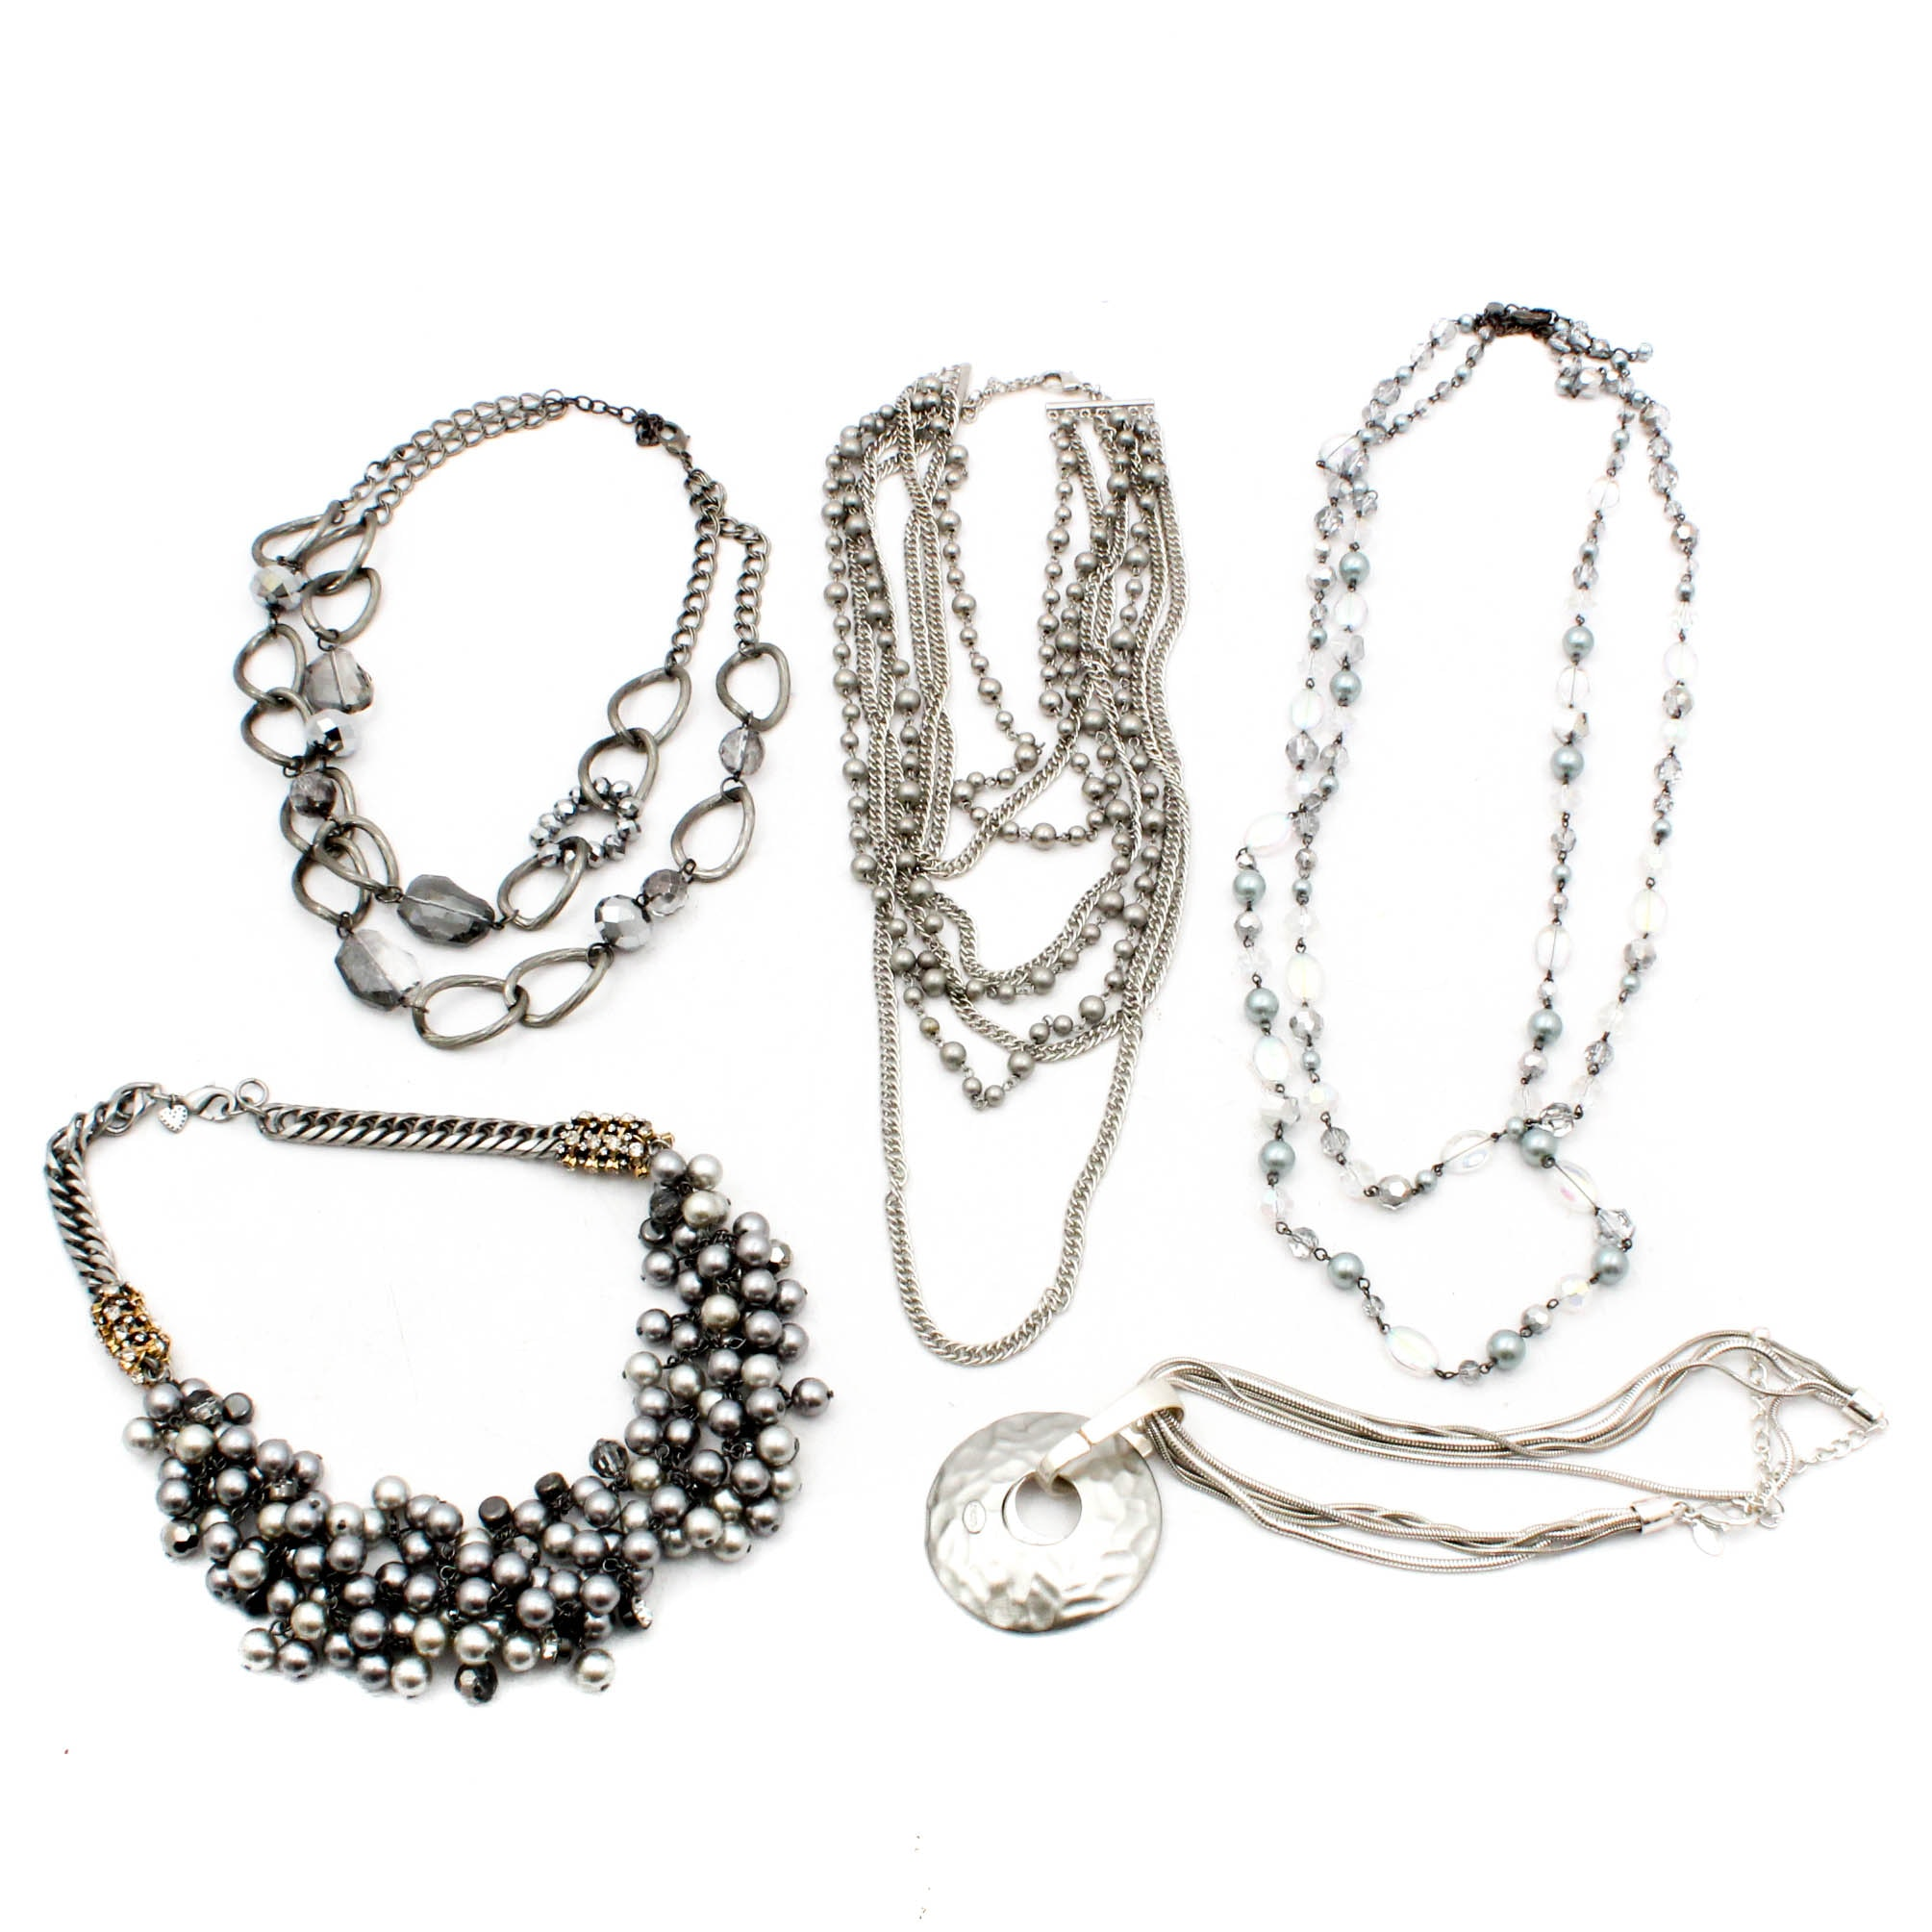 Silver Tone Costume Necklaces Including Chico's